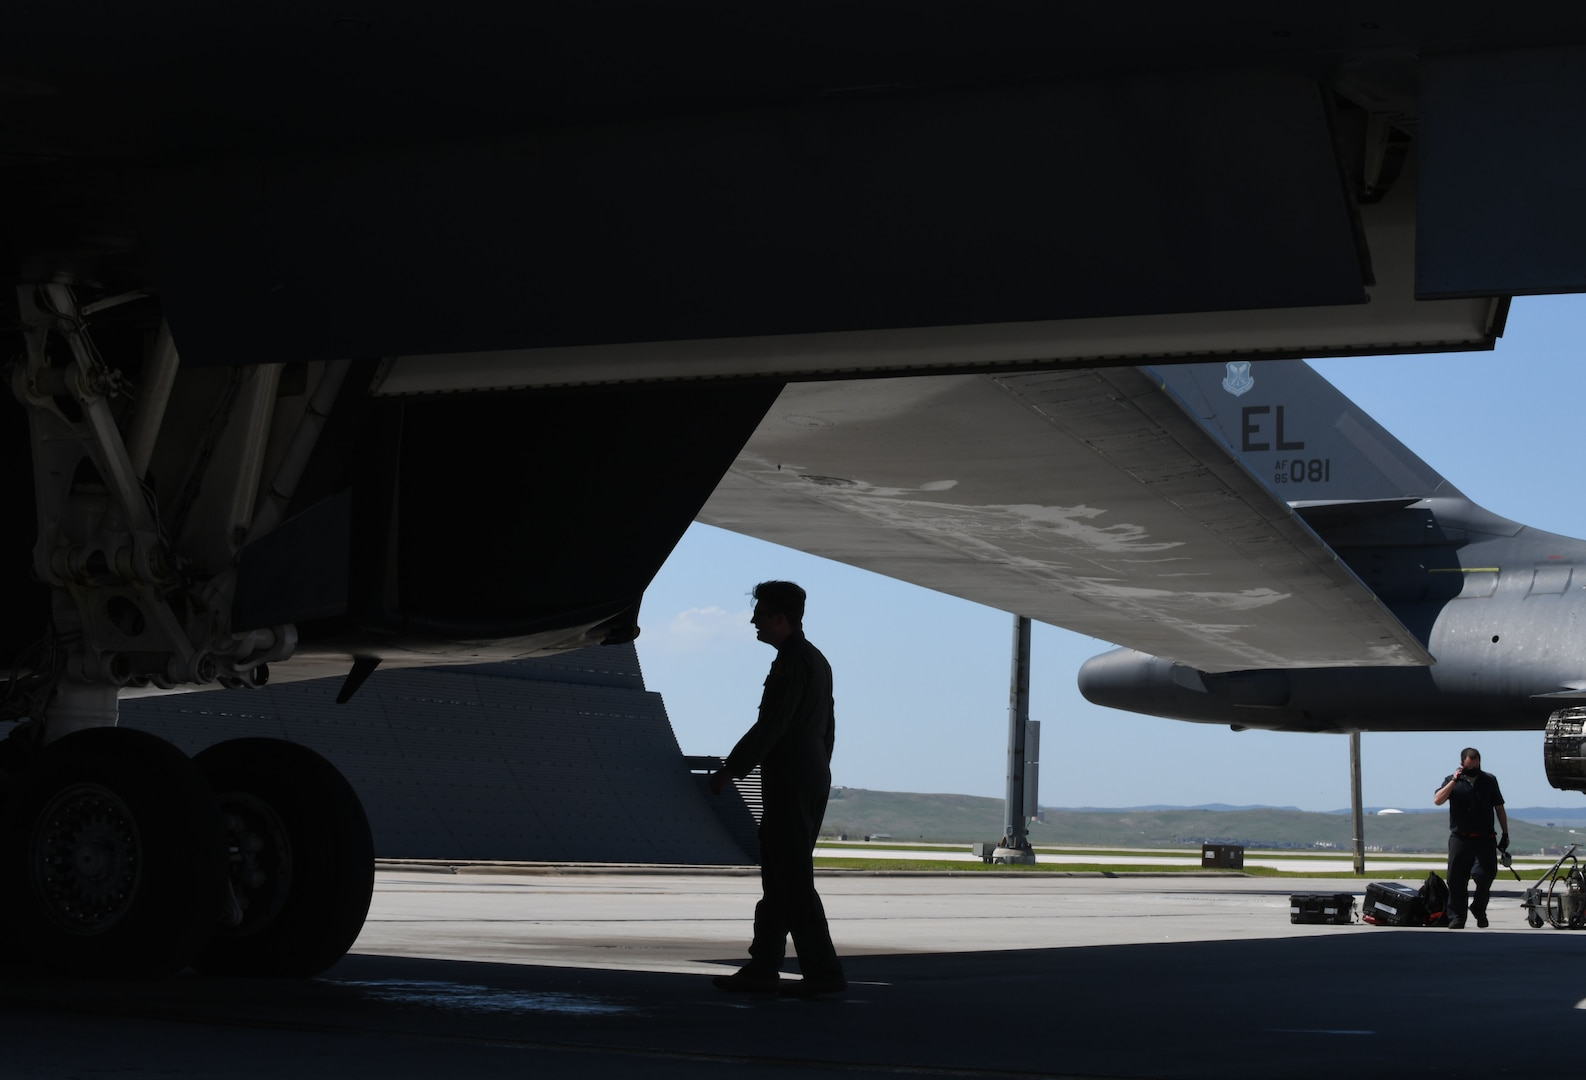 Pre-flight checks are conducted prior to a B-1B Lancer launch from Ellsworth Air Force Base, S.D., May 19, 2020, in support of a Bomber Task Force mission within the U.S. European Command area of responsibility. BTF missions are a visible demonstration of the United States' capability of extended deterrence and commitment to the collective defense of the NATO alliance. (U.S. Air Force photo by Airman 1st Class Christina Bennett)